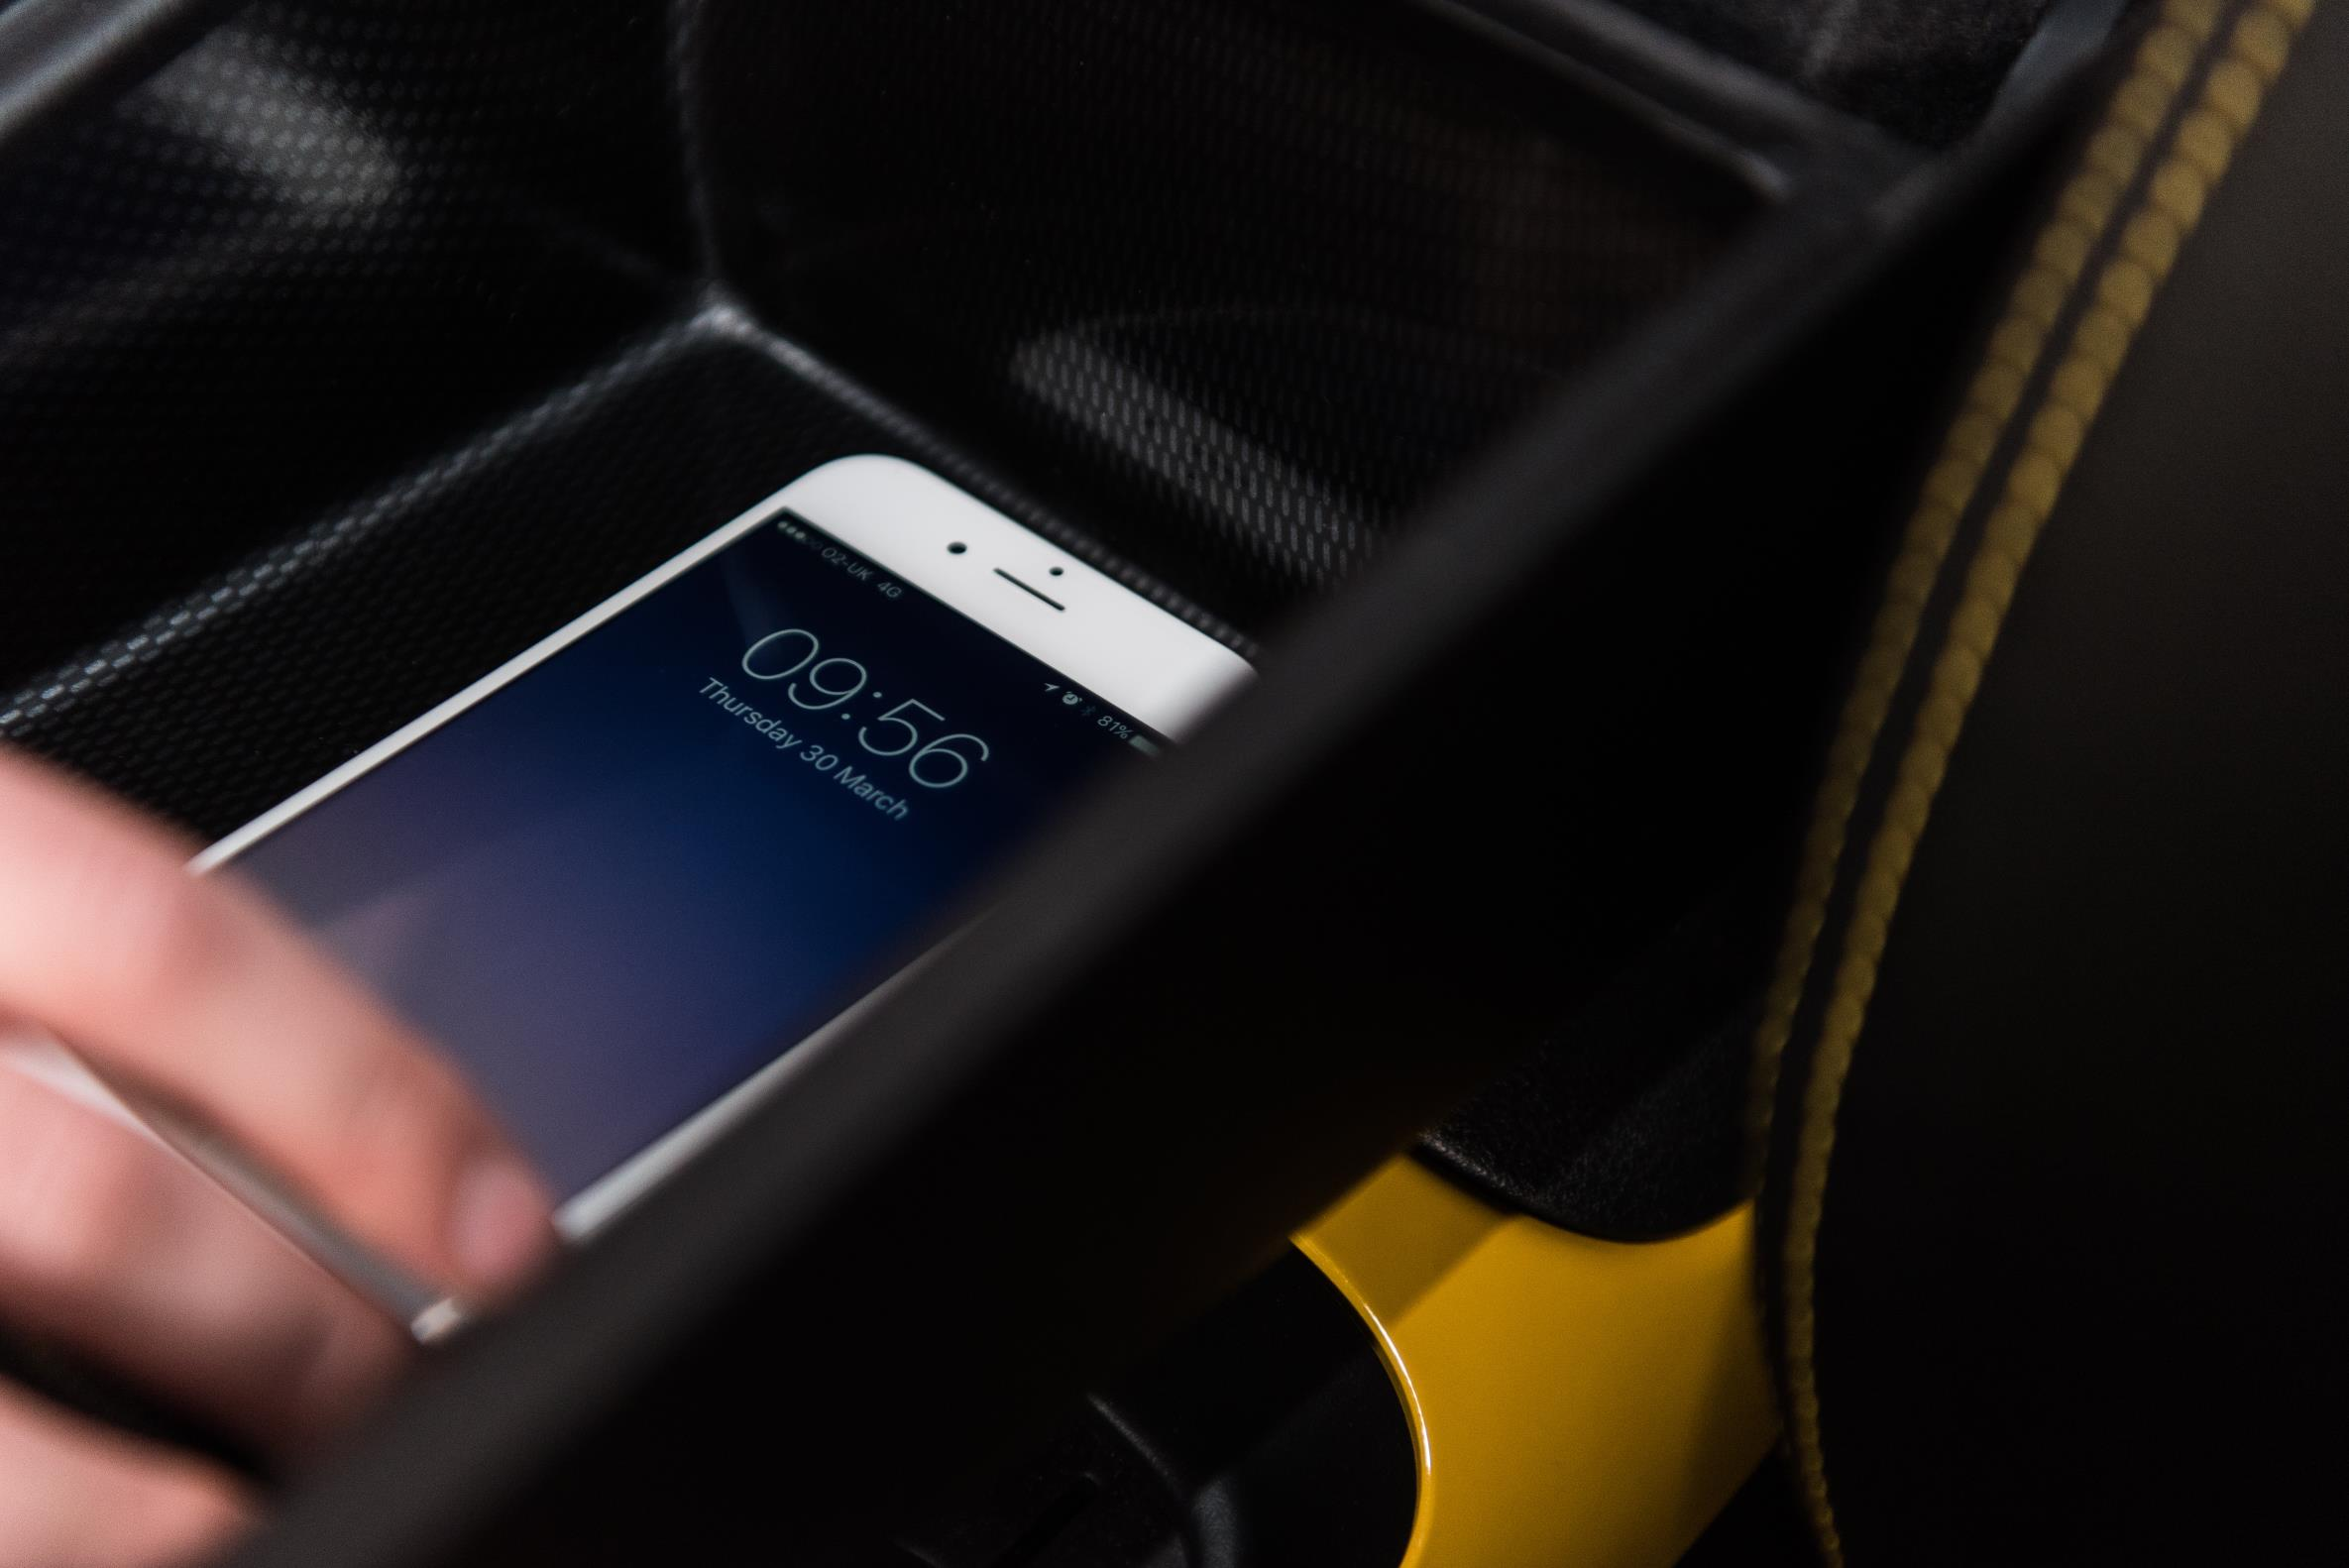 Nissan Uses A Faraday Cage To Combat Phone Distractions